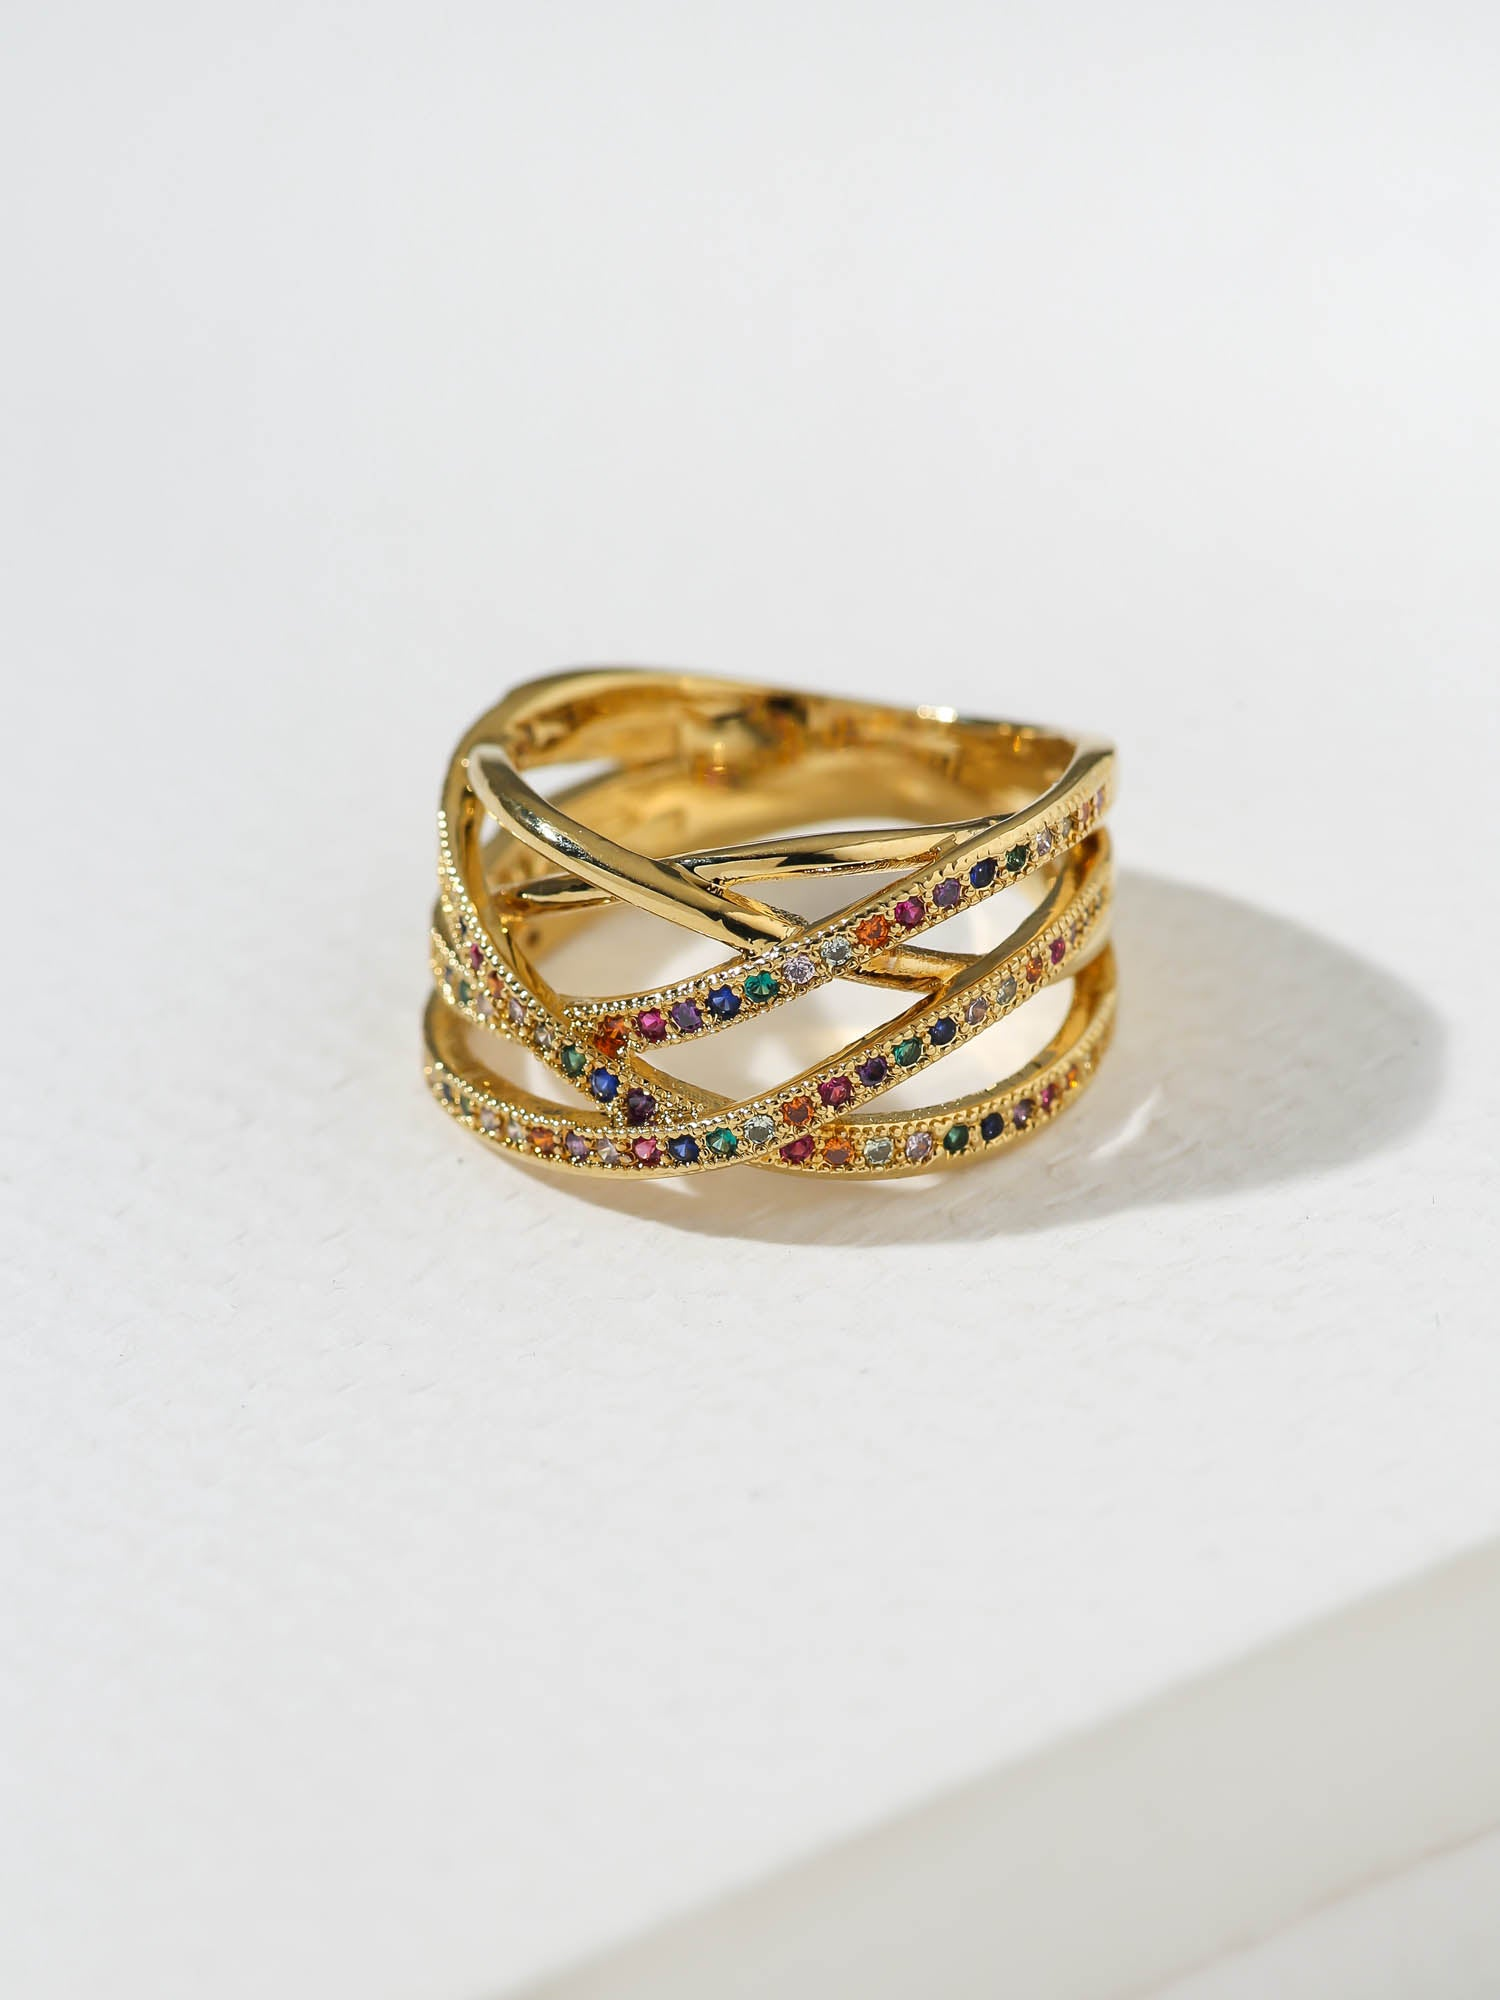 The Queeni Ring